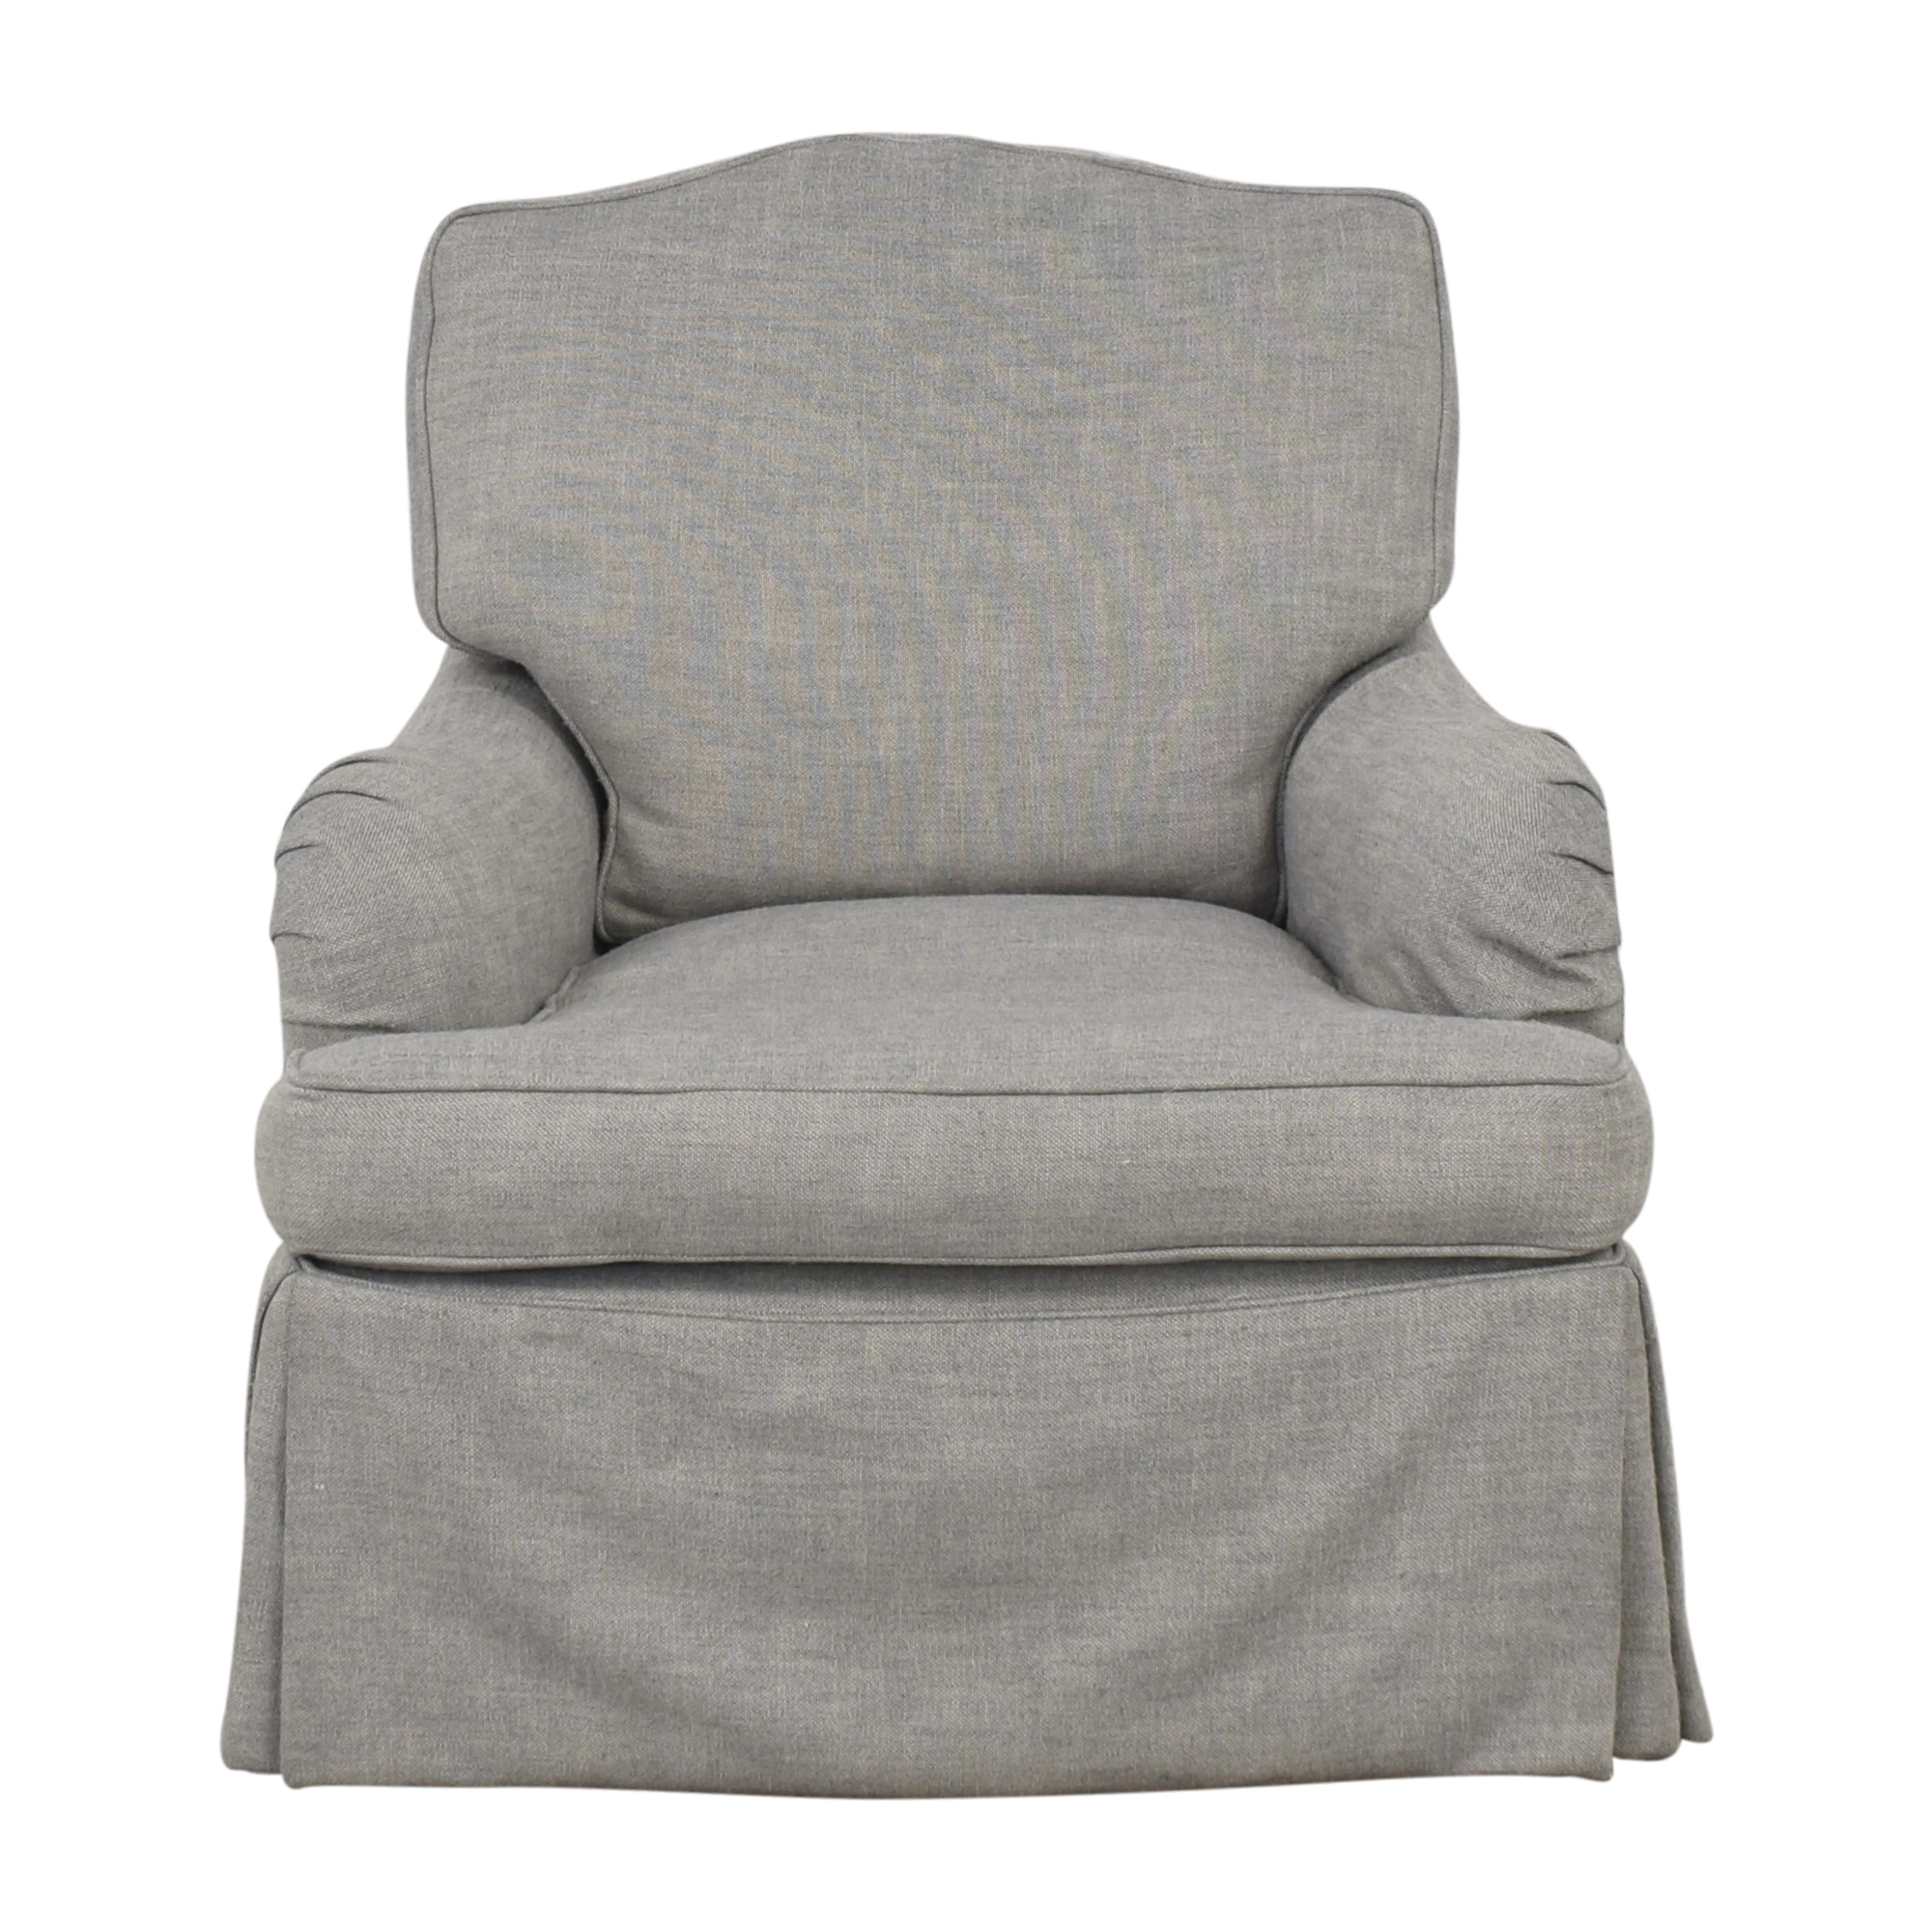 Restoration Hardware Restoration Hardware Classic Camelback Slipcovered Swivel Glider and Ottoman dimensions